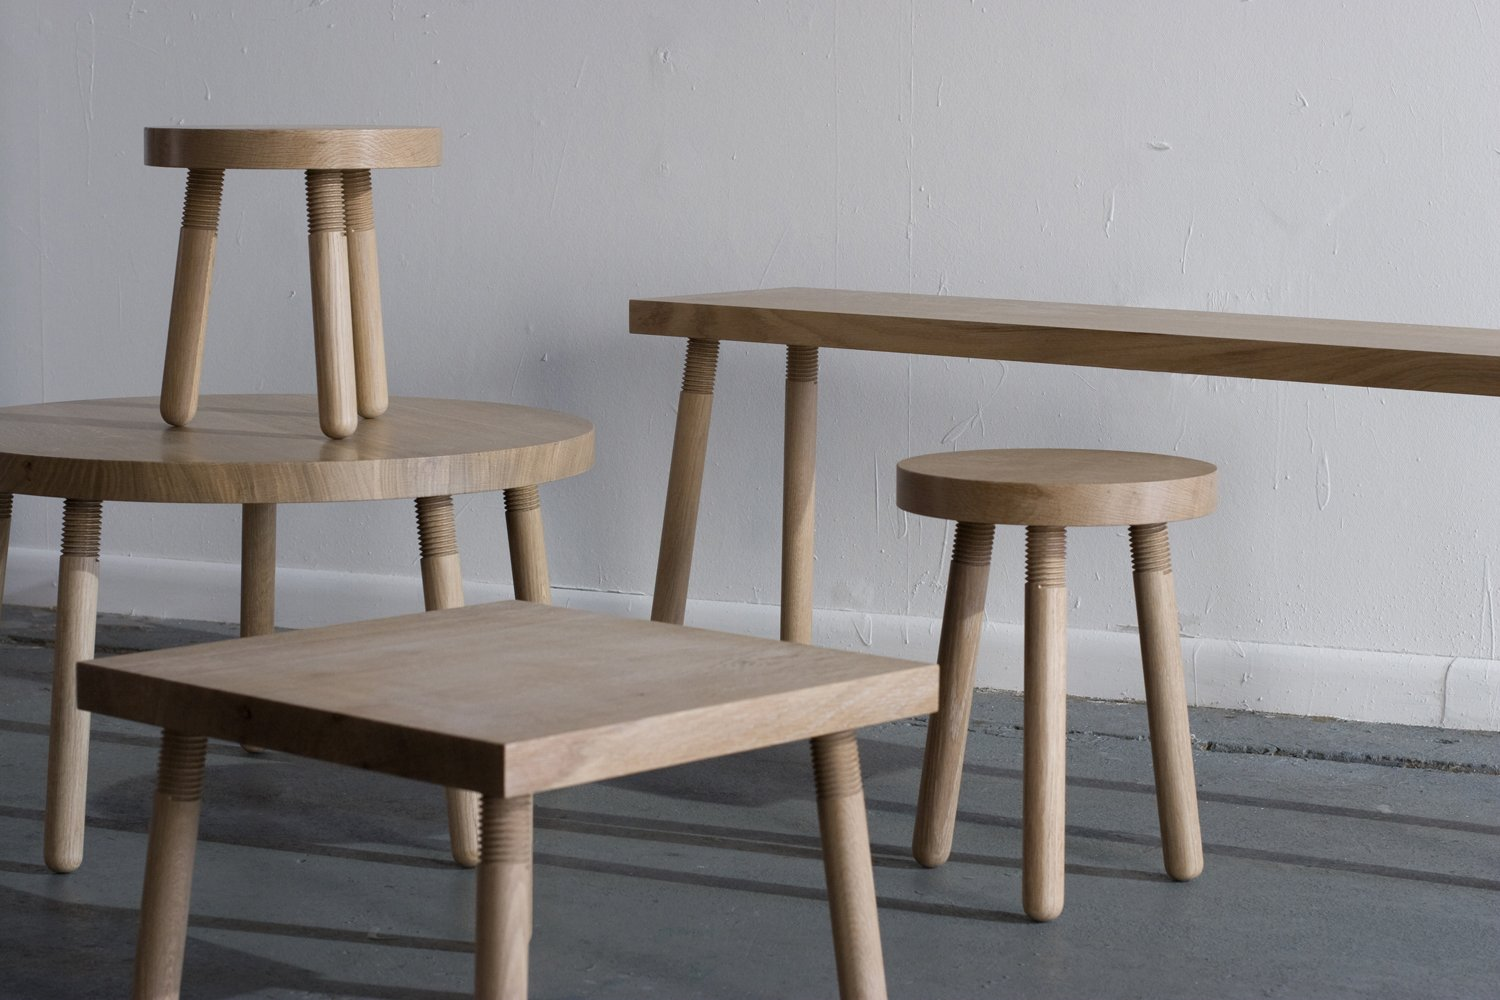 Living Room, Bench, and Stools Simple utilitarianism at its finest: Takagi's Simple Machines series of stools, benches, and tables in white oak.  Photo 1 of 6 in Getting Technical: 5 Types of Wood Joints You Should Know from Industrial Design: Atelier Takagi